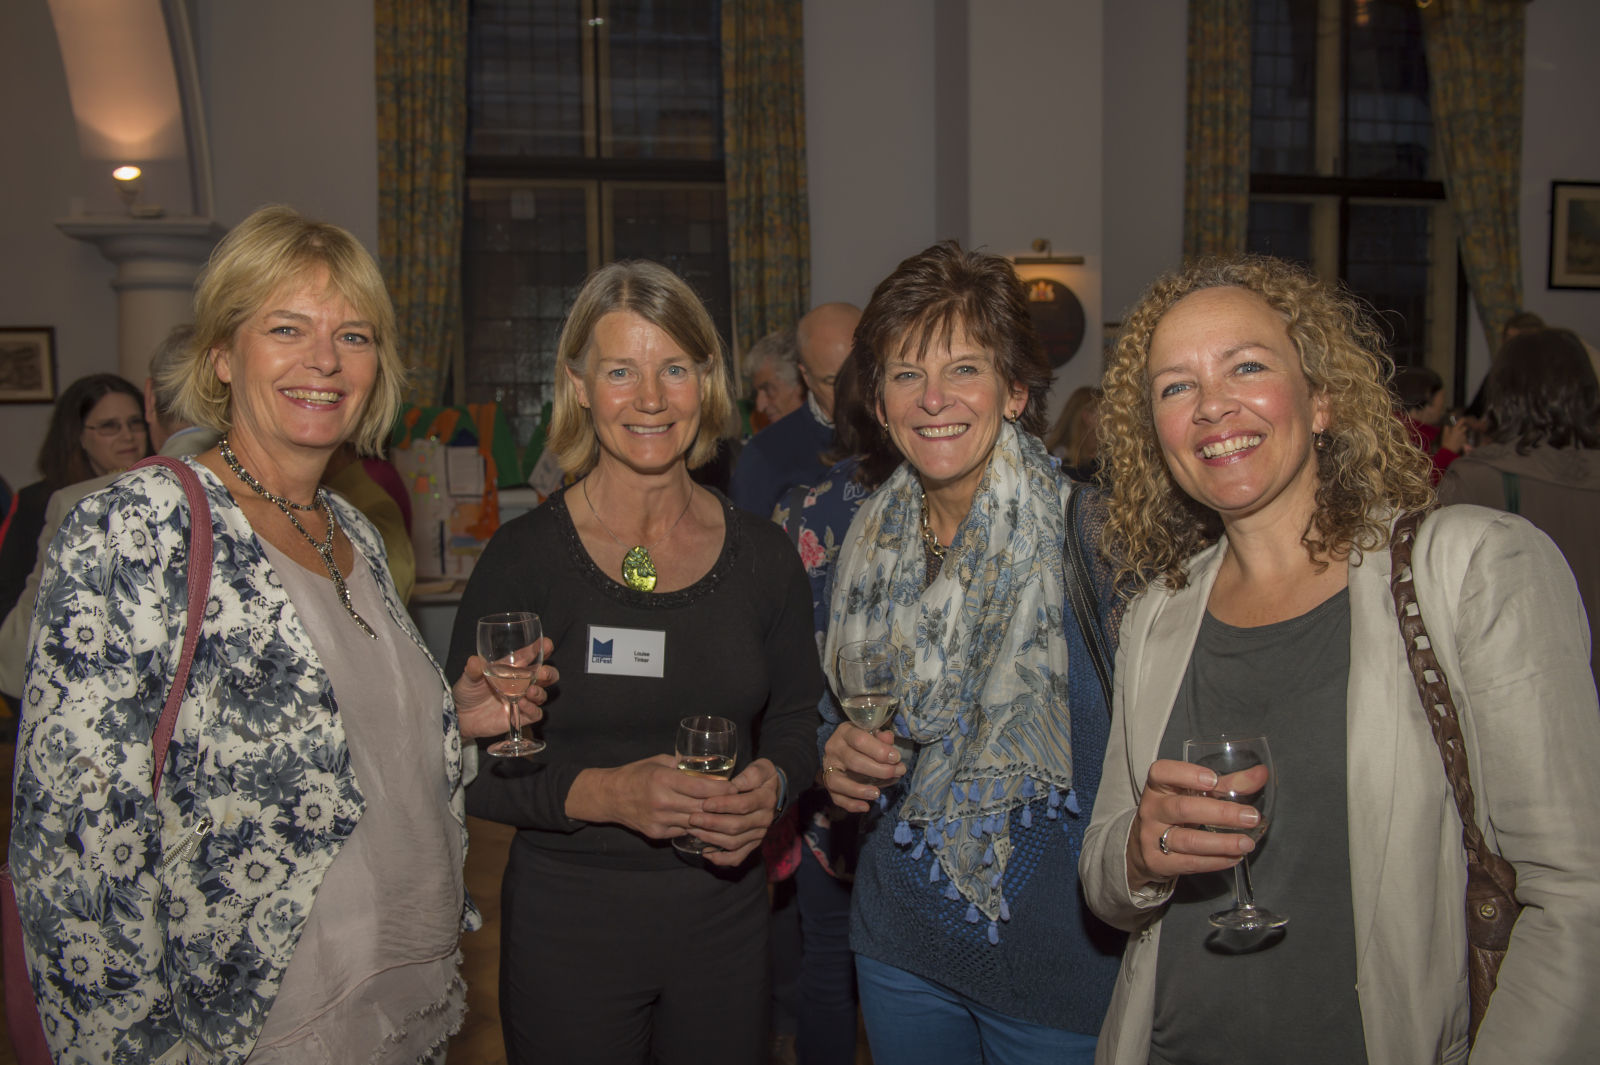 (l to r): Jo Beddall - St Francis School, Louise Tinker - LitFest, Elaine James and Laura Briscall both of St Francis School